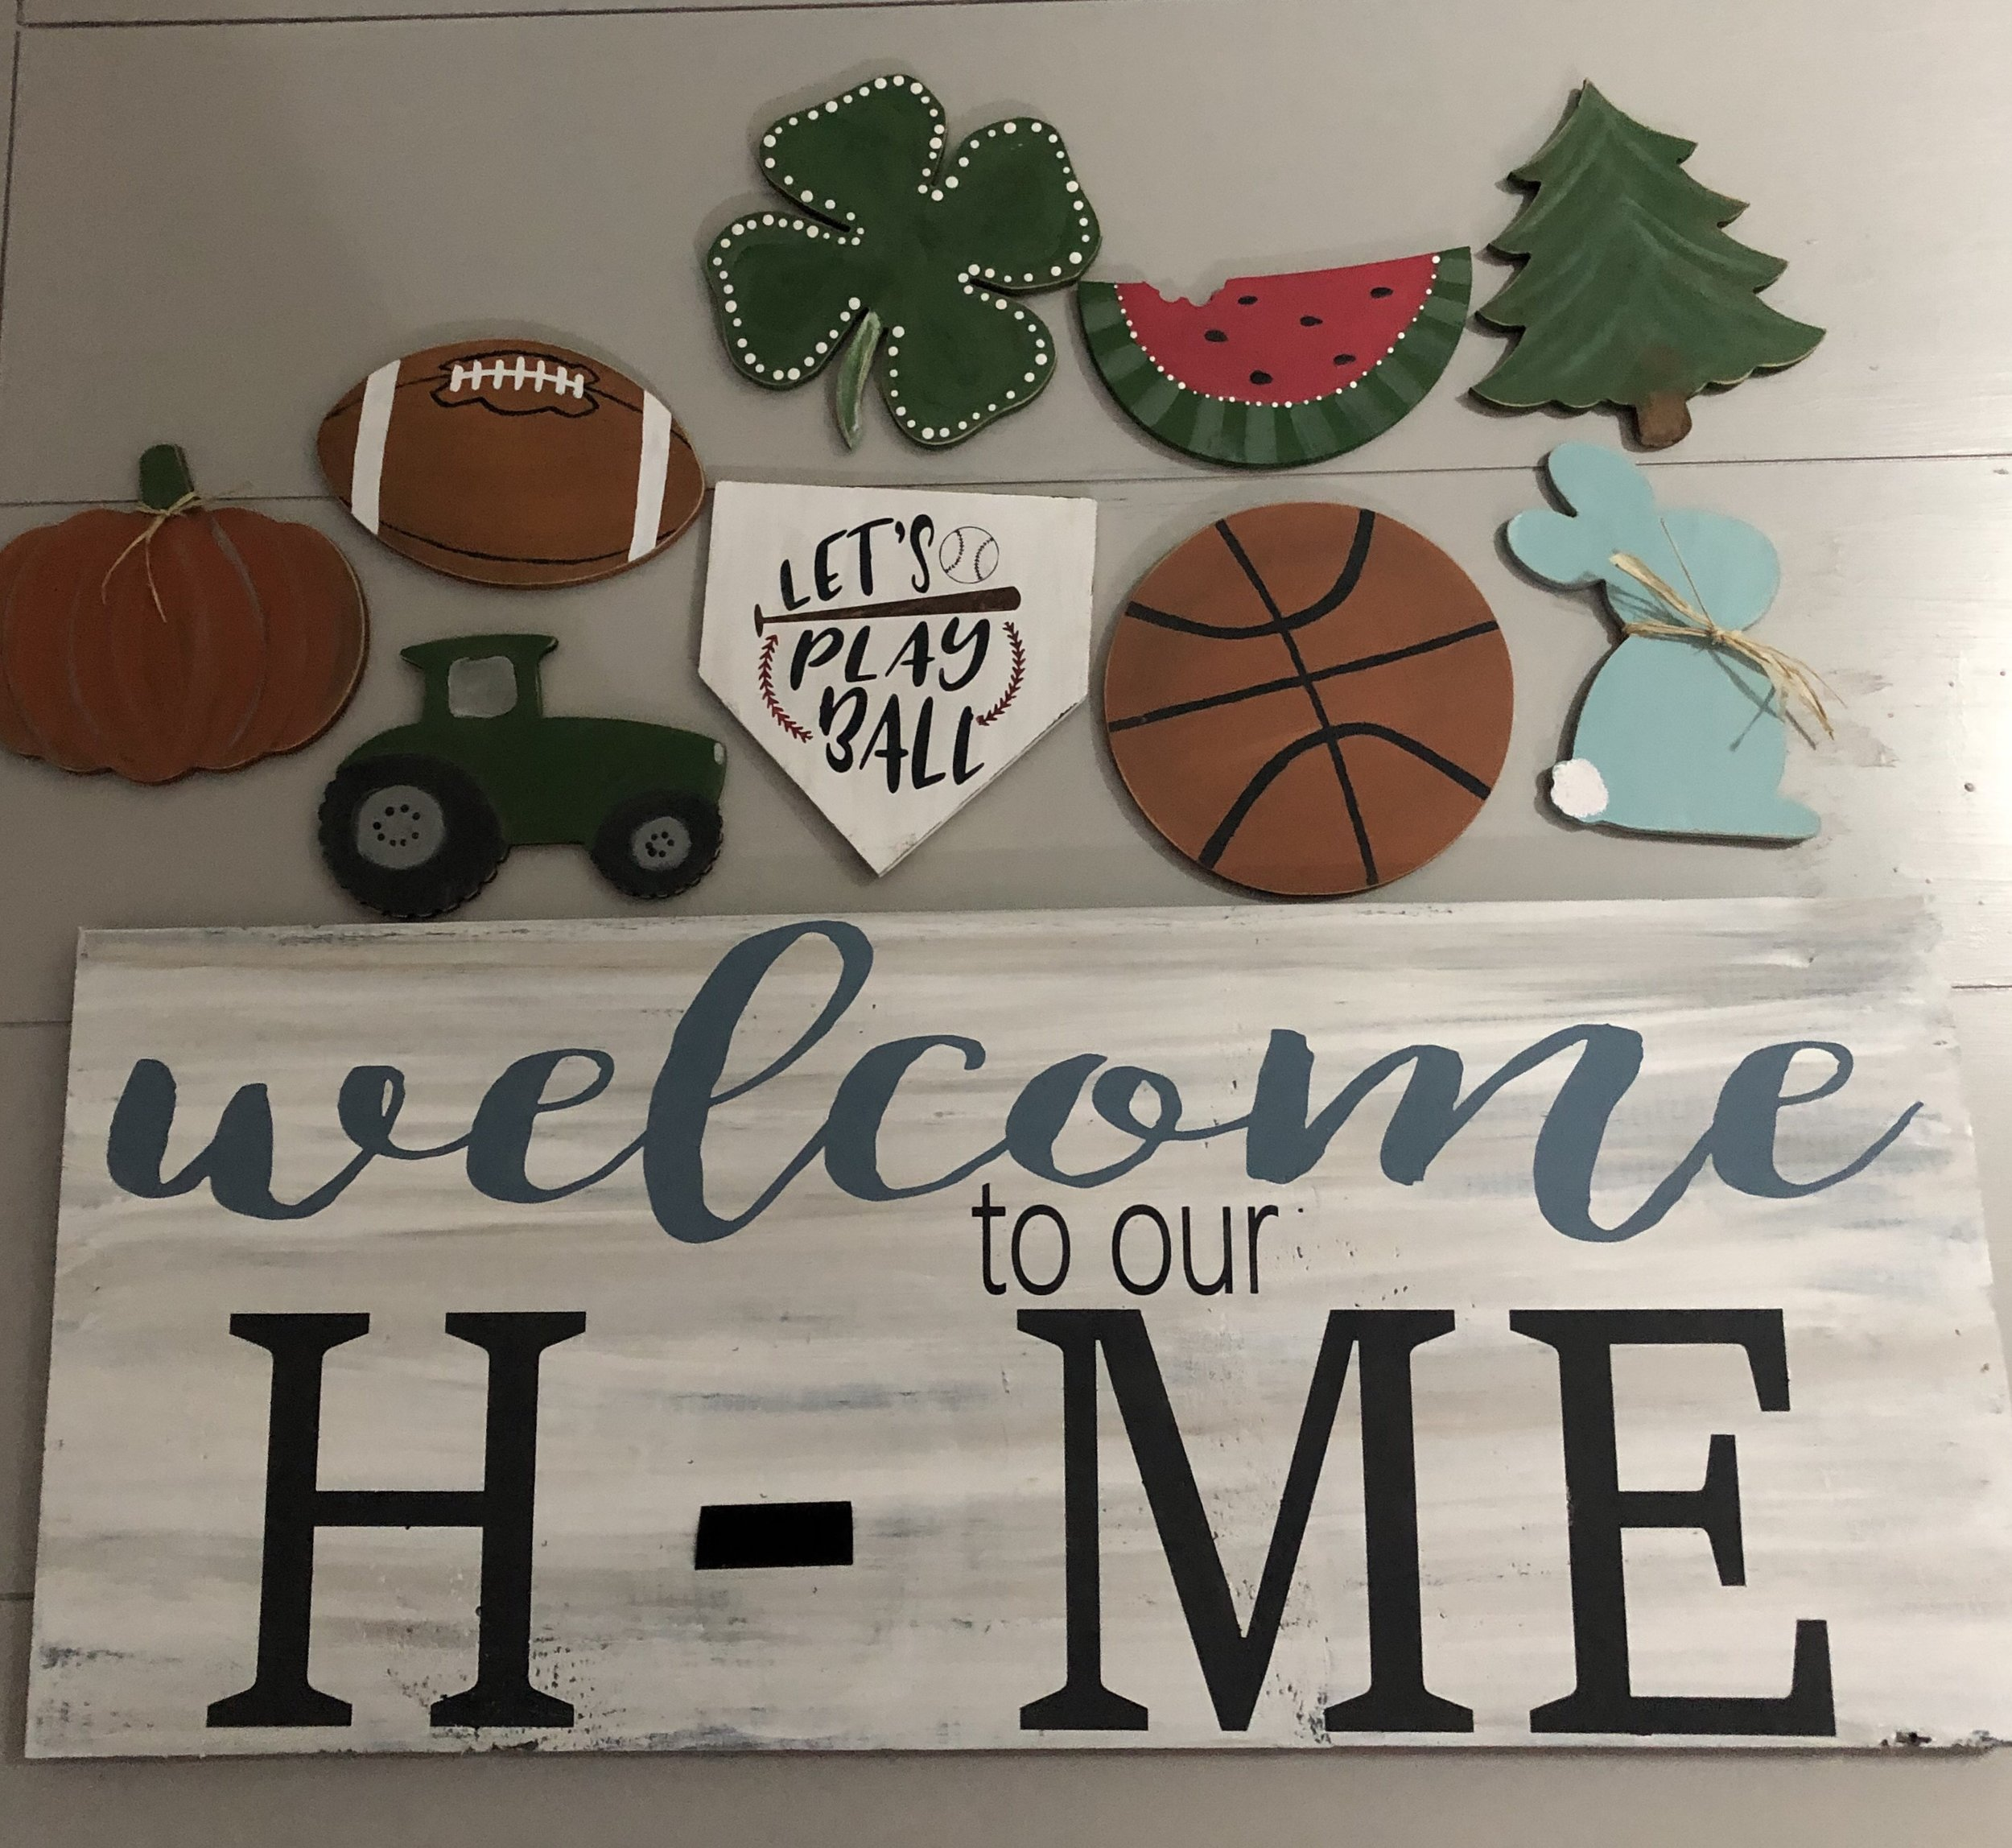 Welcome to our Home sign by The Firehouse that received almost 10 million views, 21,000 comments and 76,000 shares on Facebook.